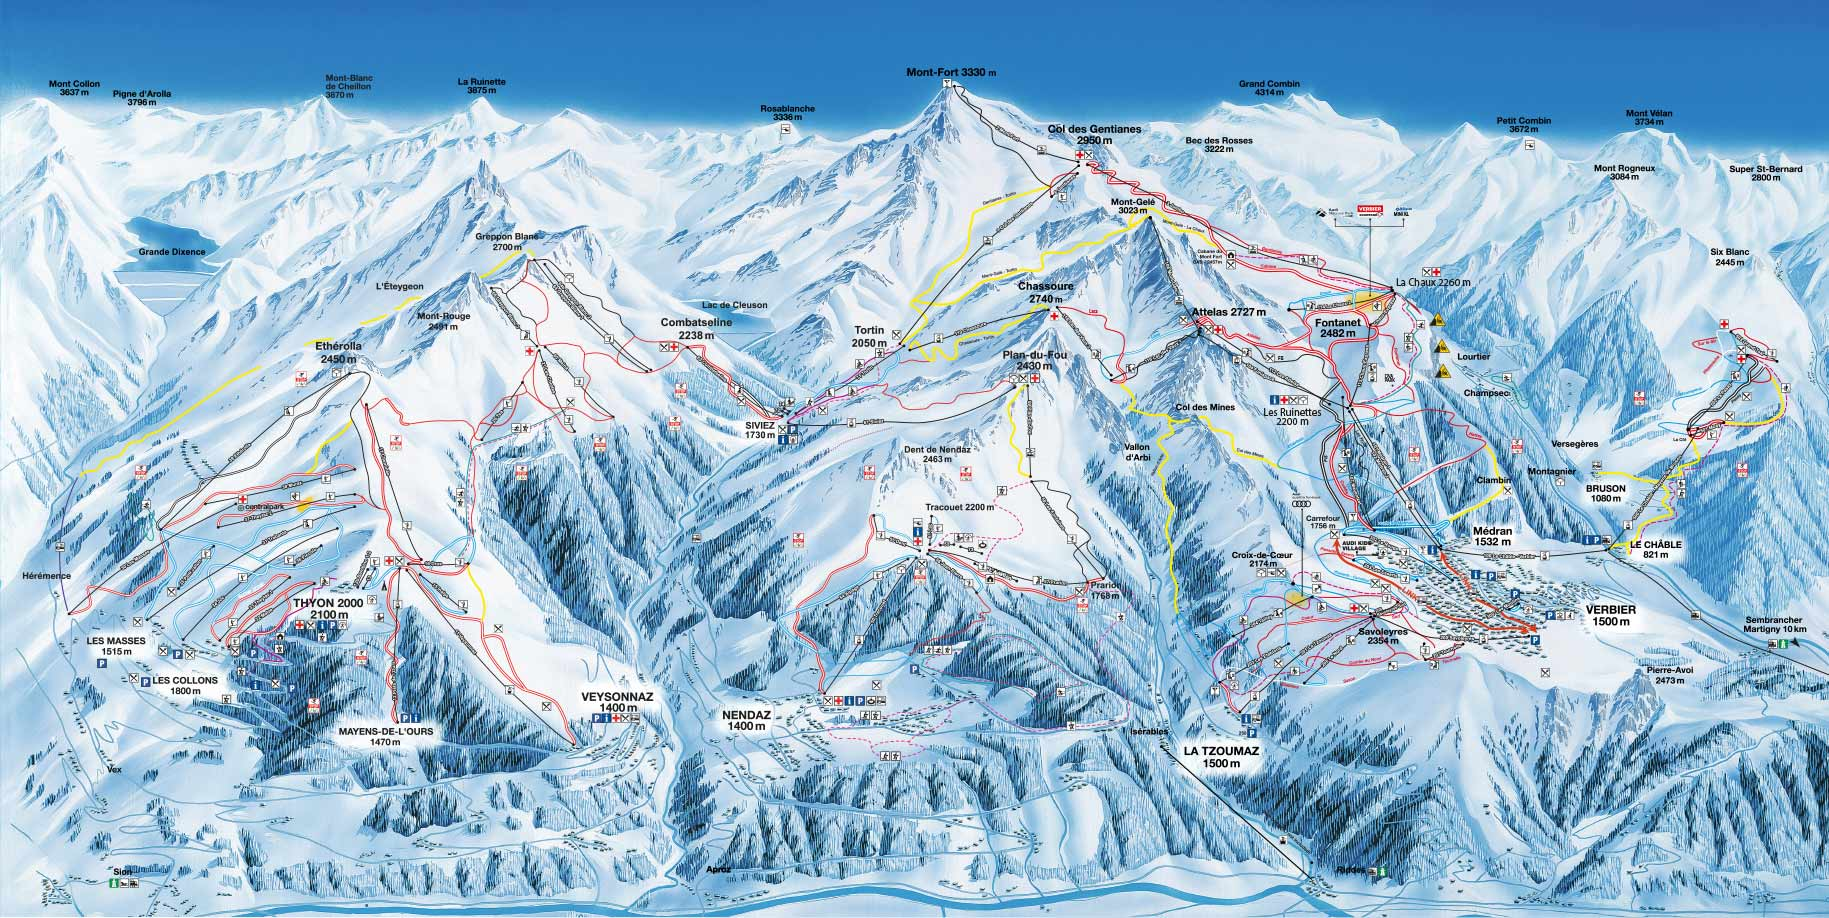 Verbier Piste / Trail Map